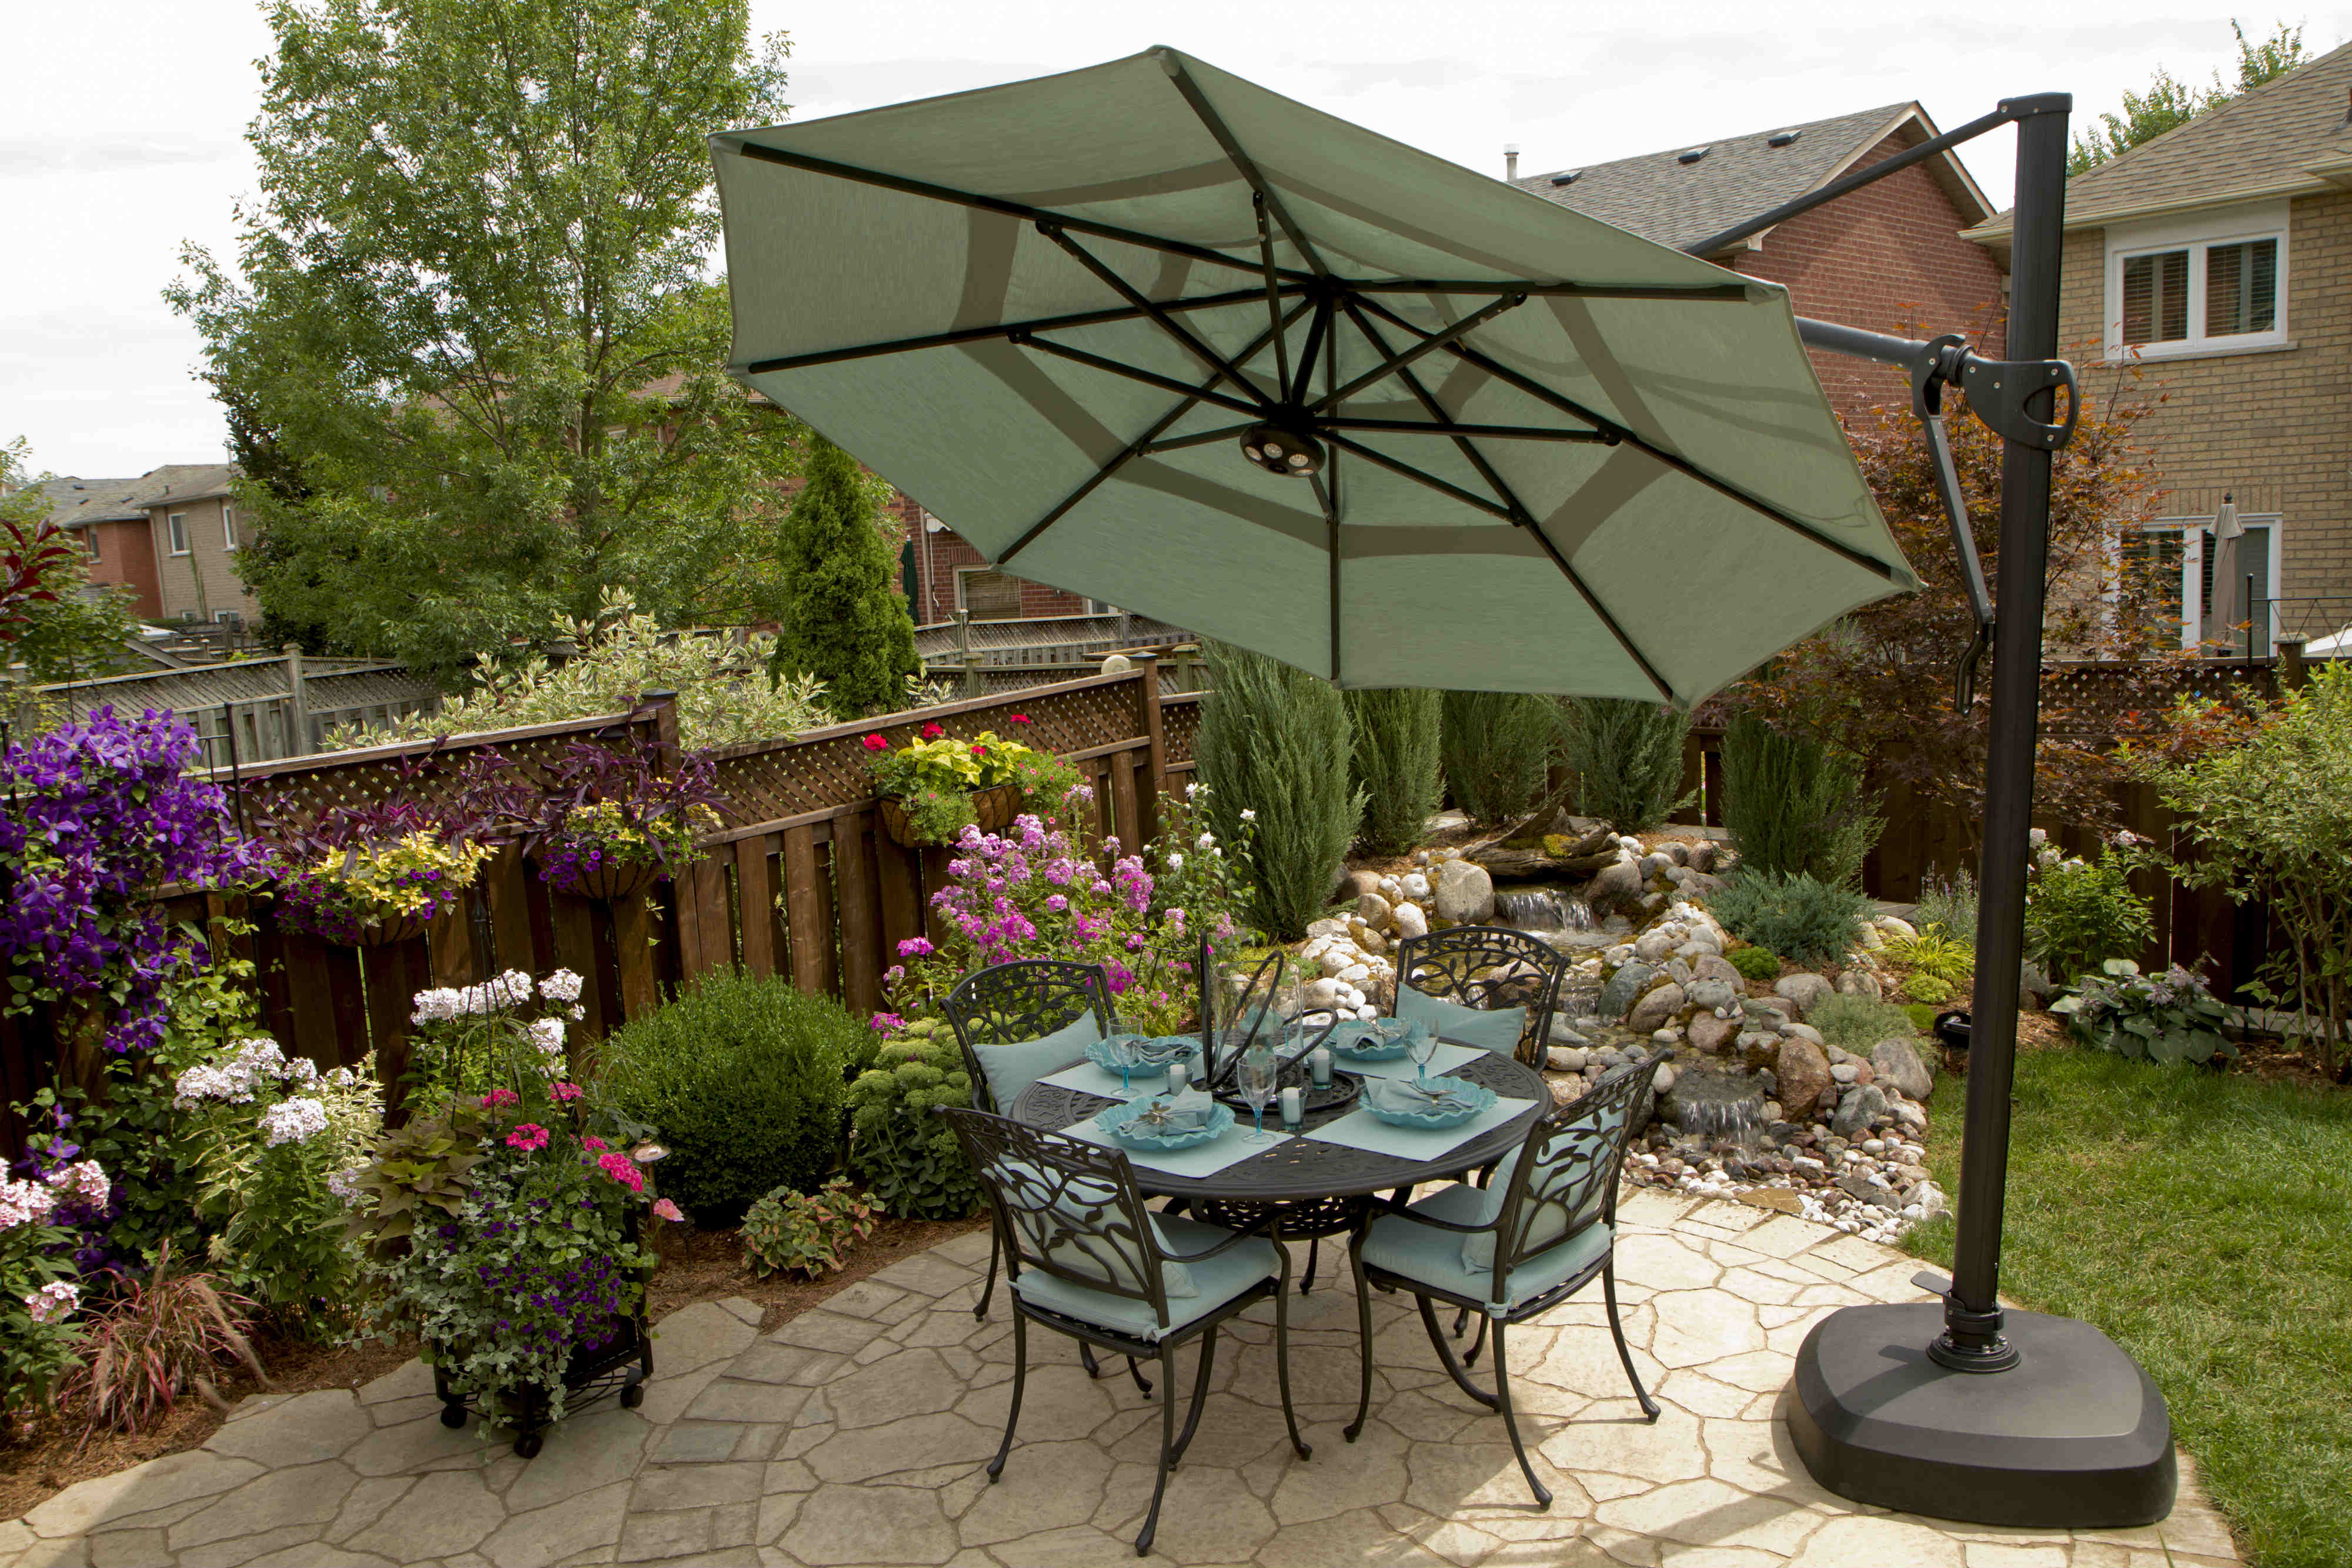 small-backyard-umbrella-design-outdoor-living